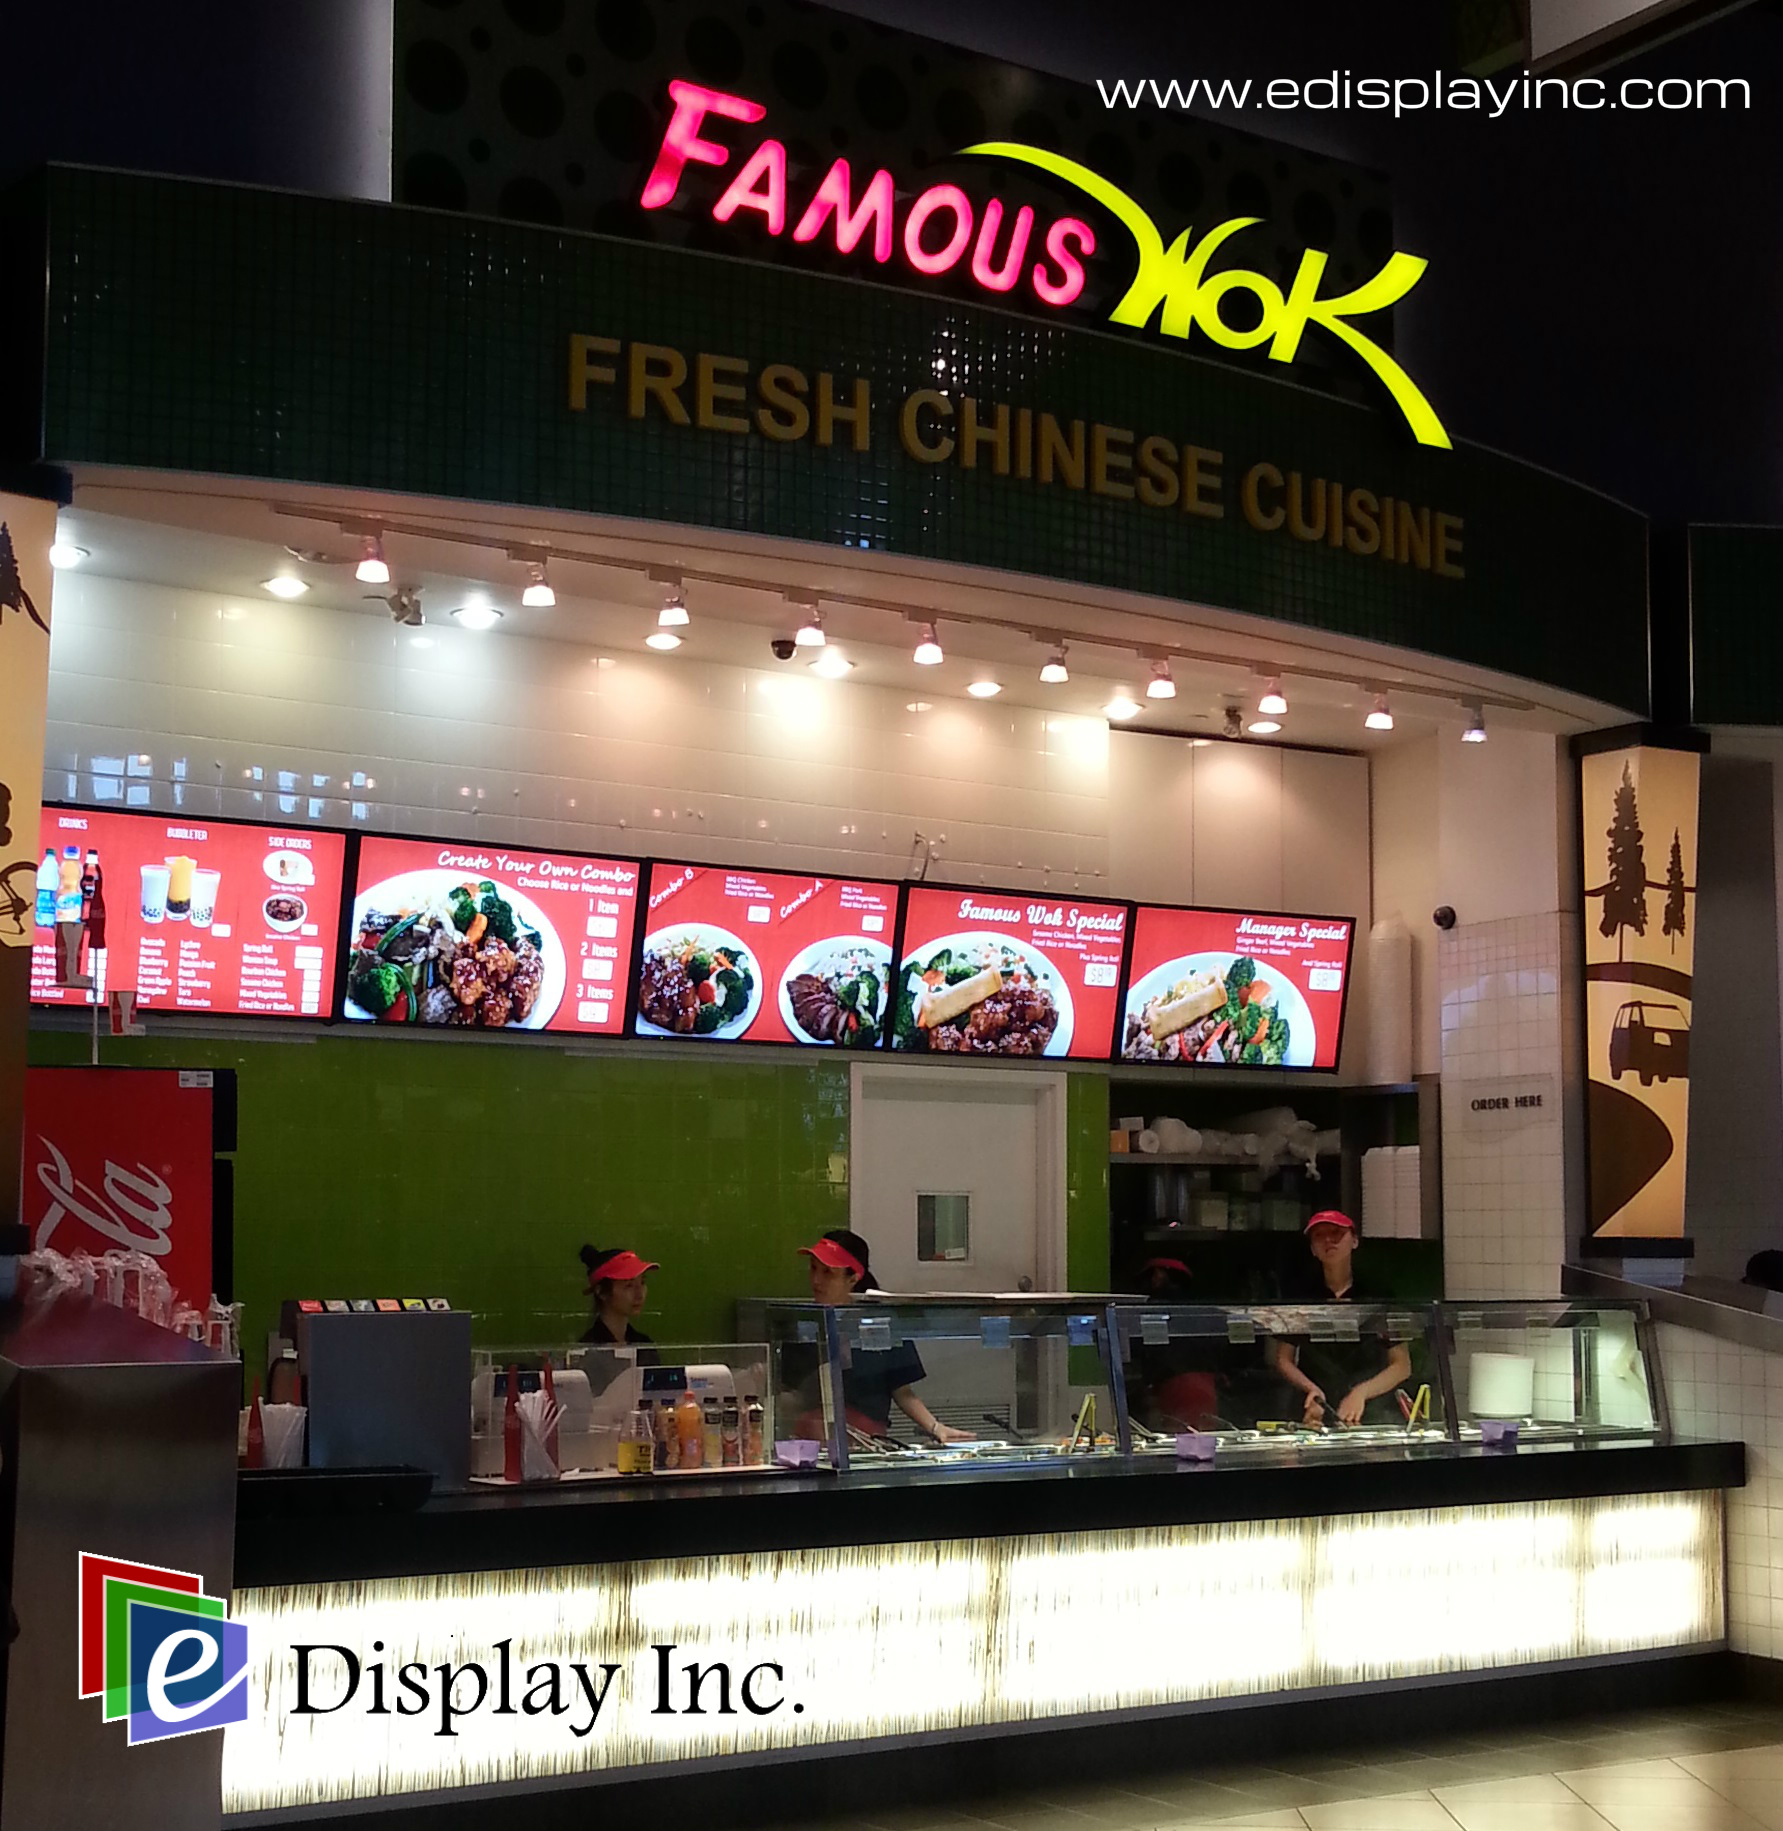 E Display Deploys Digital Menu Boards at Famous Wok Cross Iron Mills, Calgary, Alberta.